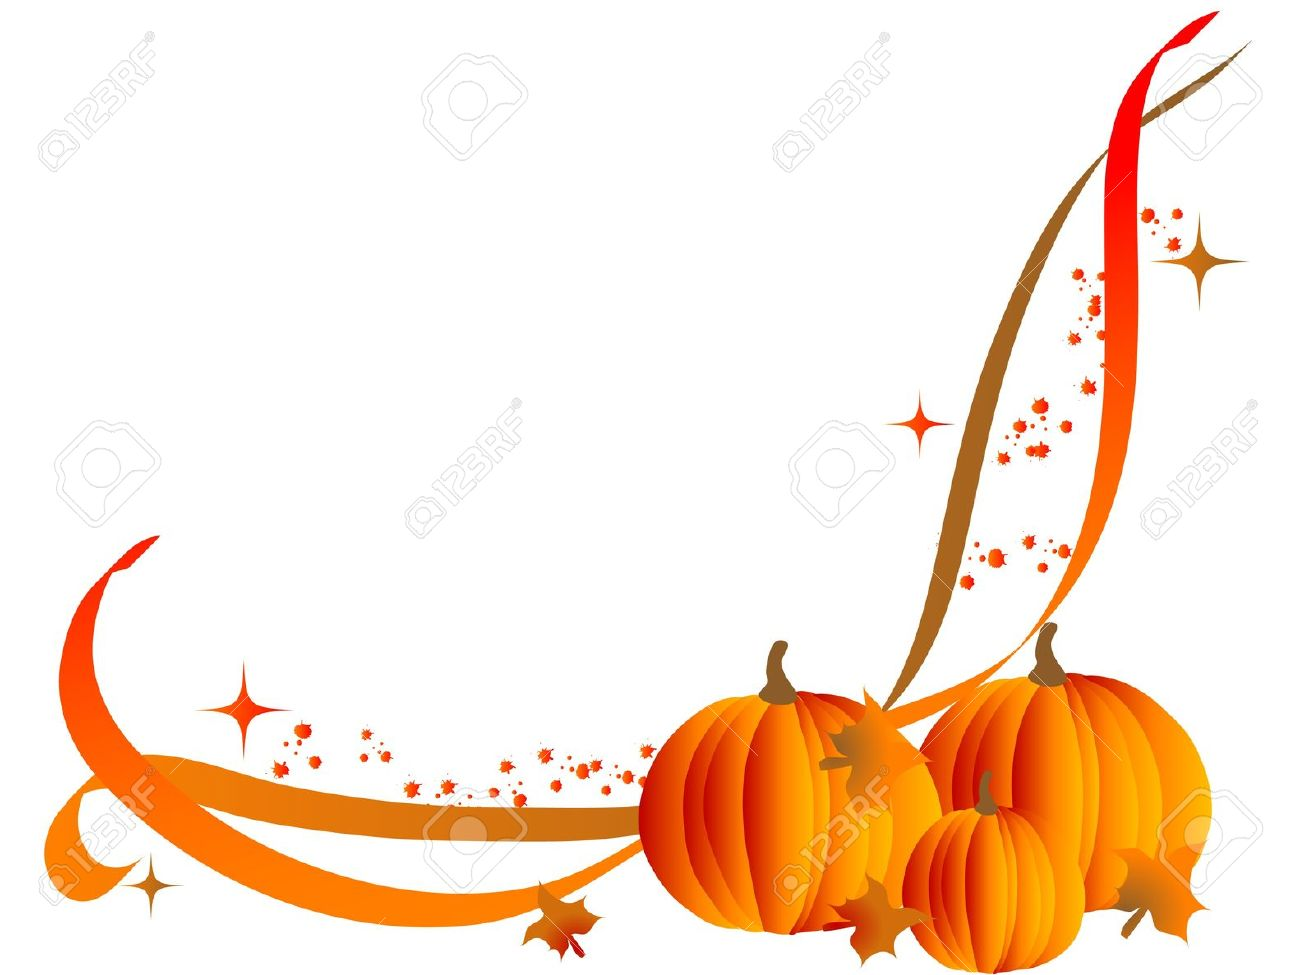 1300x975 Images Of Halloween Border Clip Art